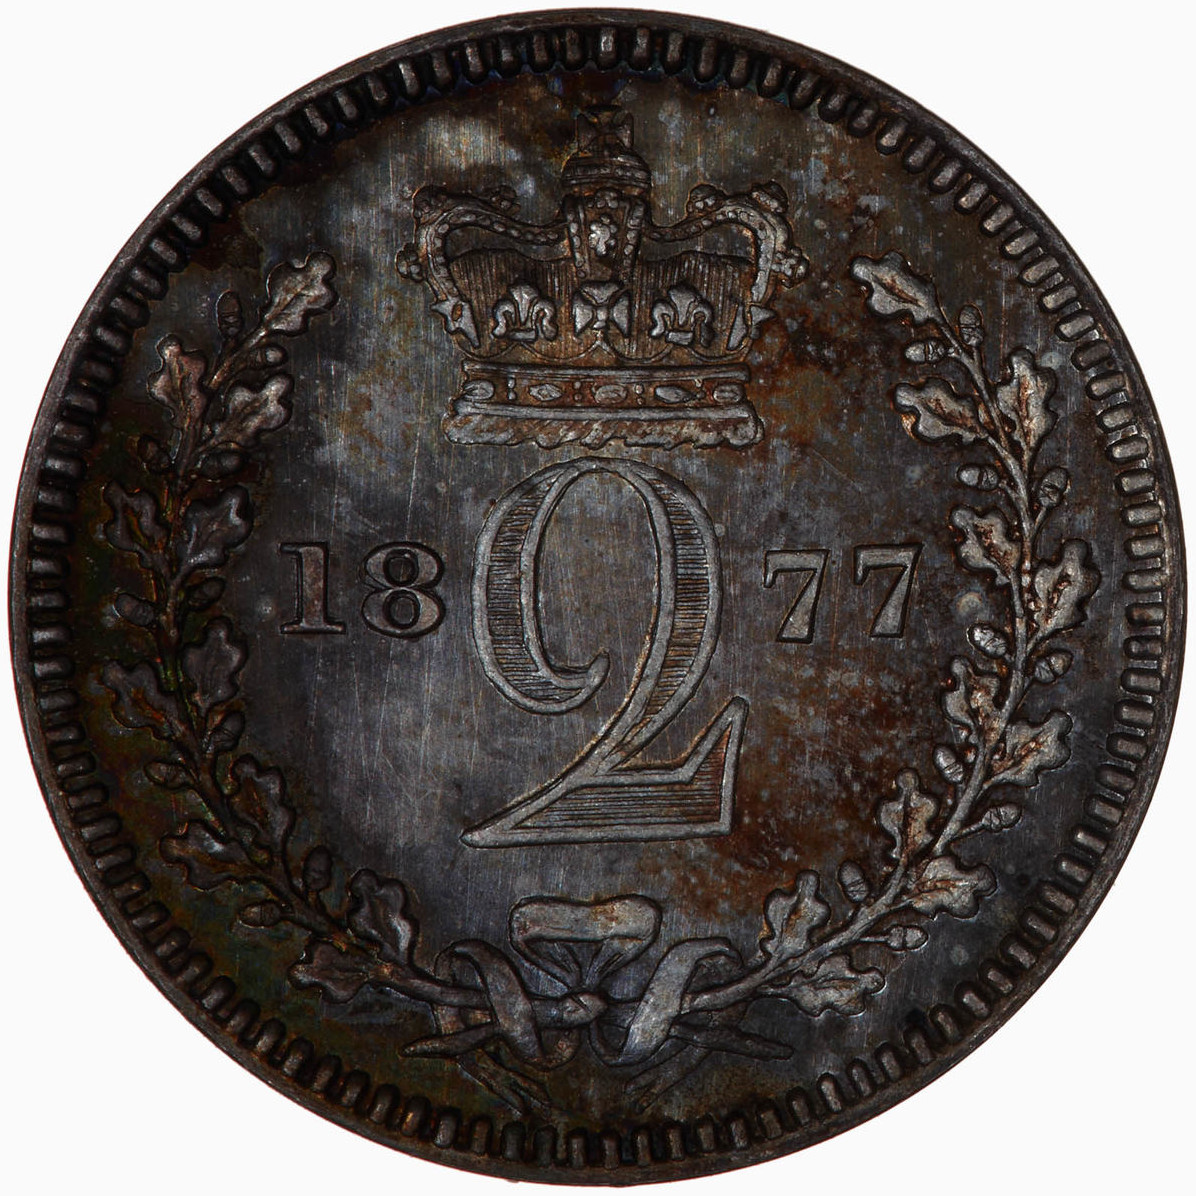 Twopence 1877 (Maundy): Photo Coin - Twopence (Maundy), Queen Victoria, Great Britain, 1877